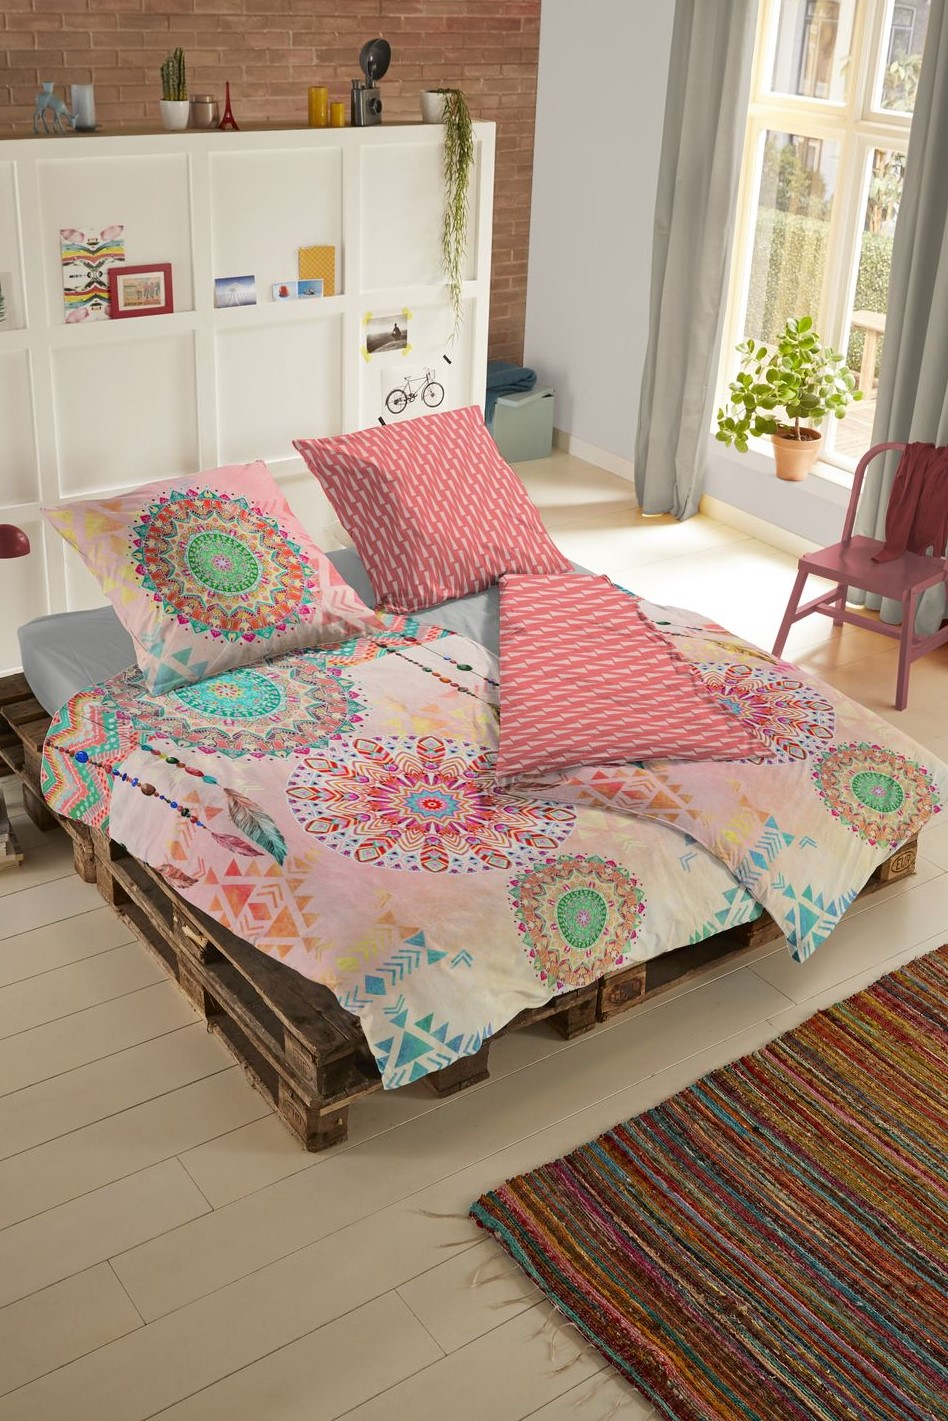 Home double-sided single bed bed linen Hip Vilstre 140x200cm